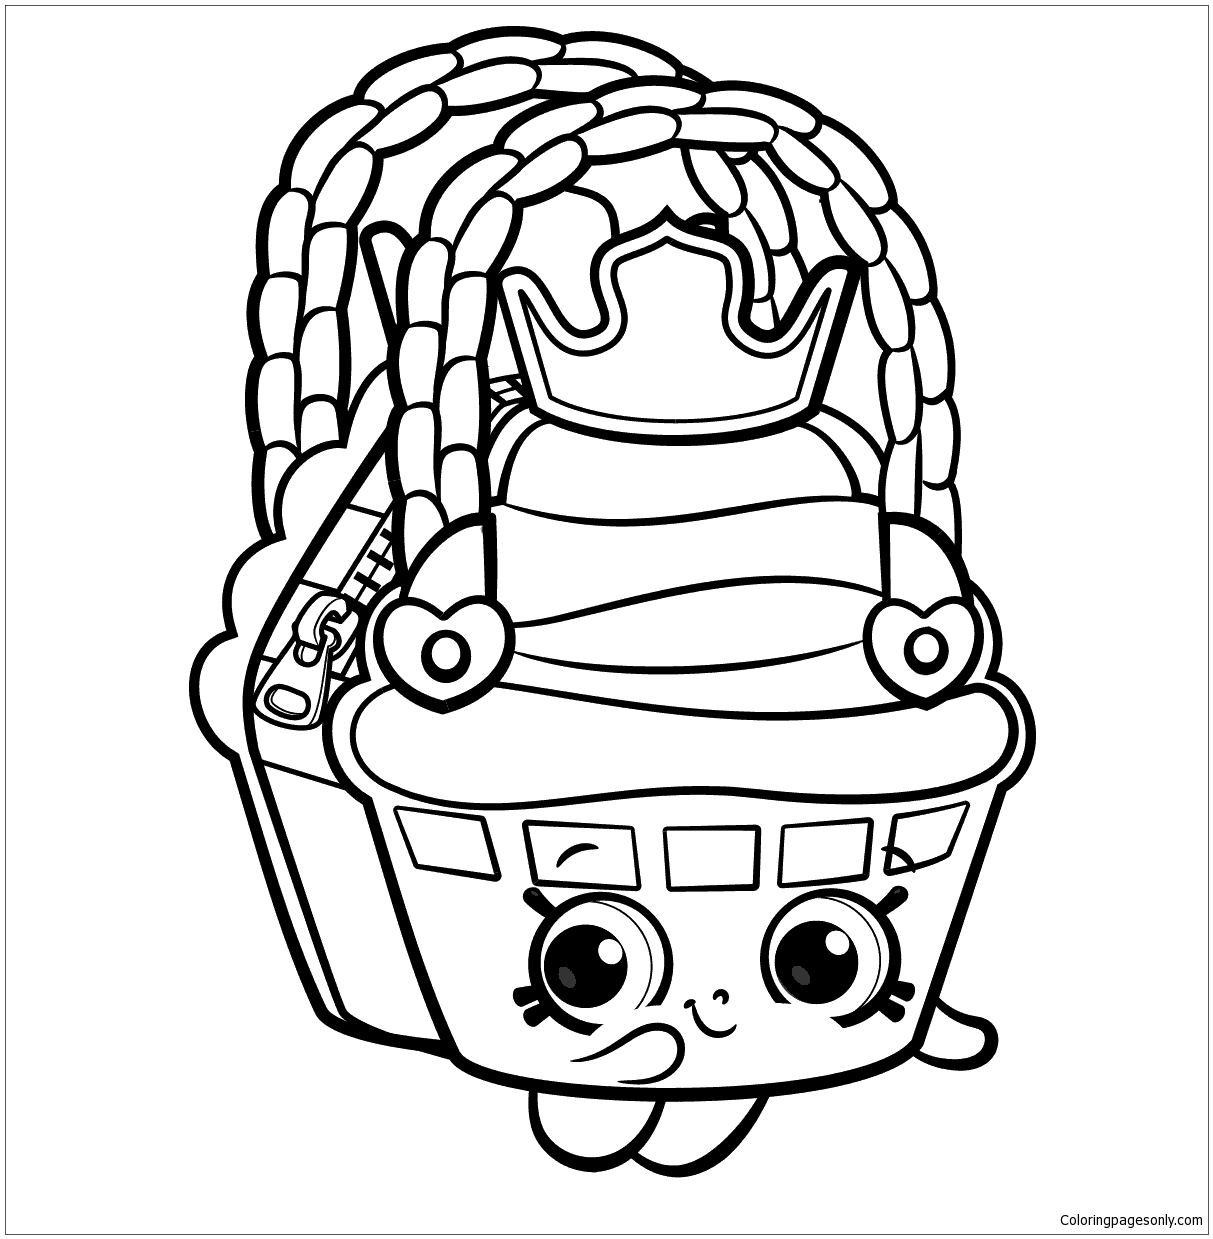 coloring pages : Disney Coloring Pages For Adults Online Lovely ... | 1239x1213